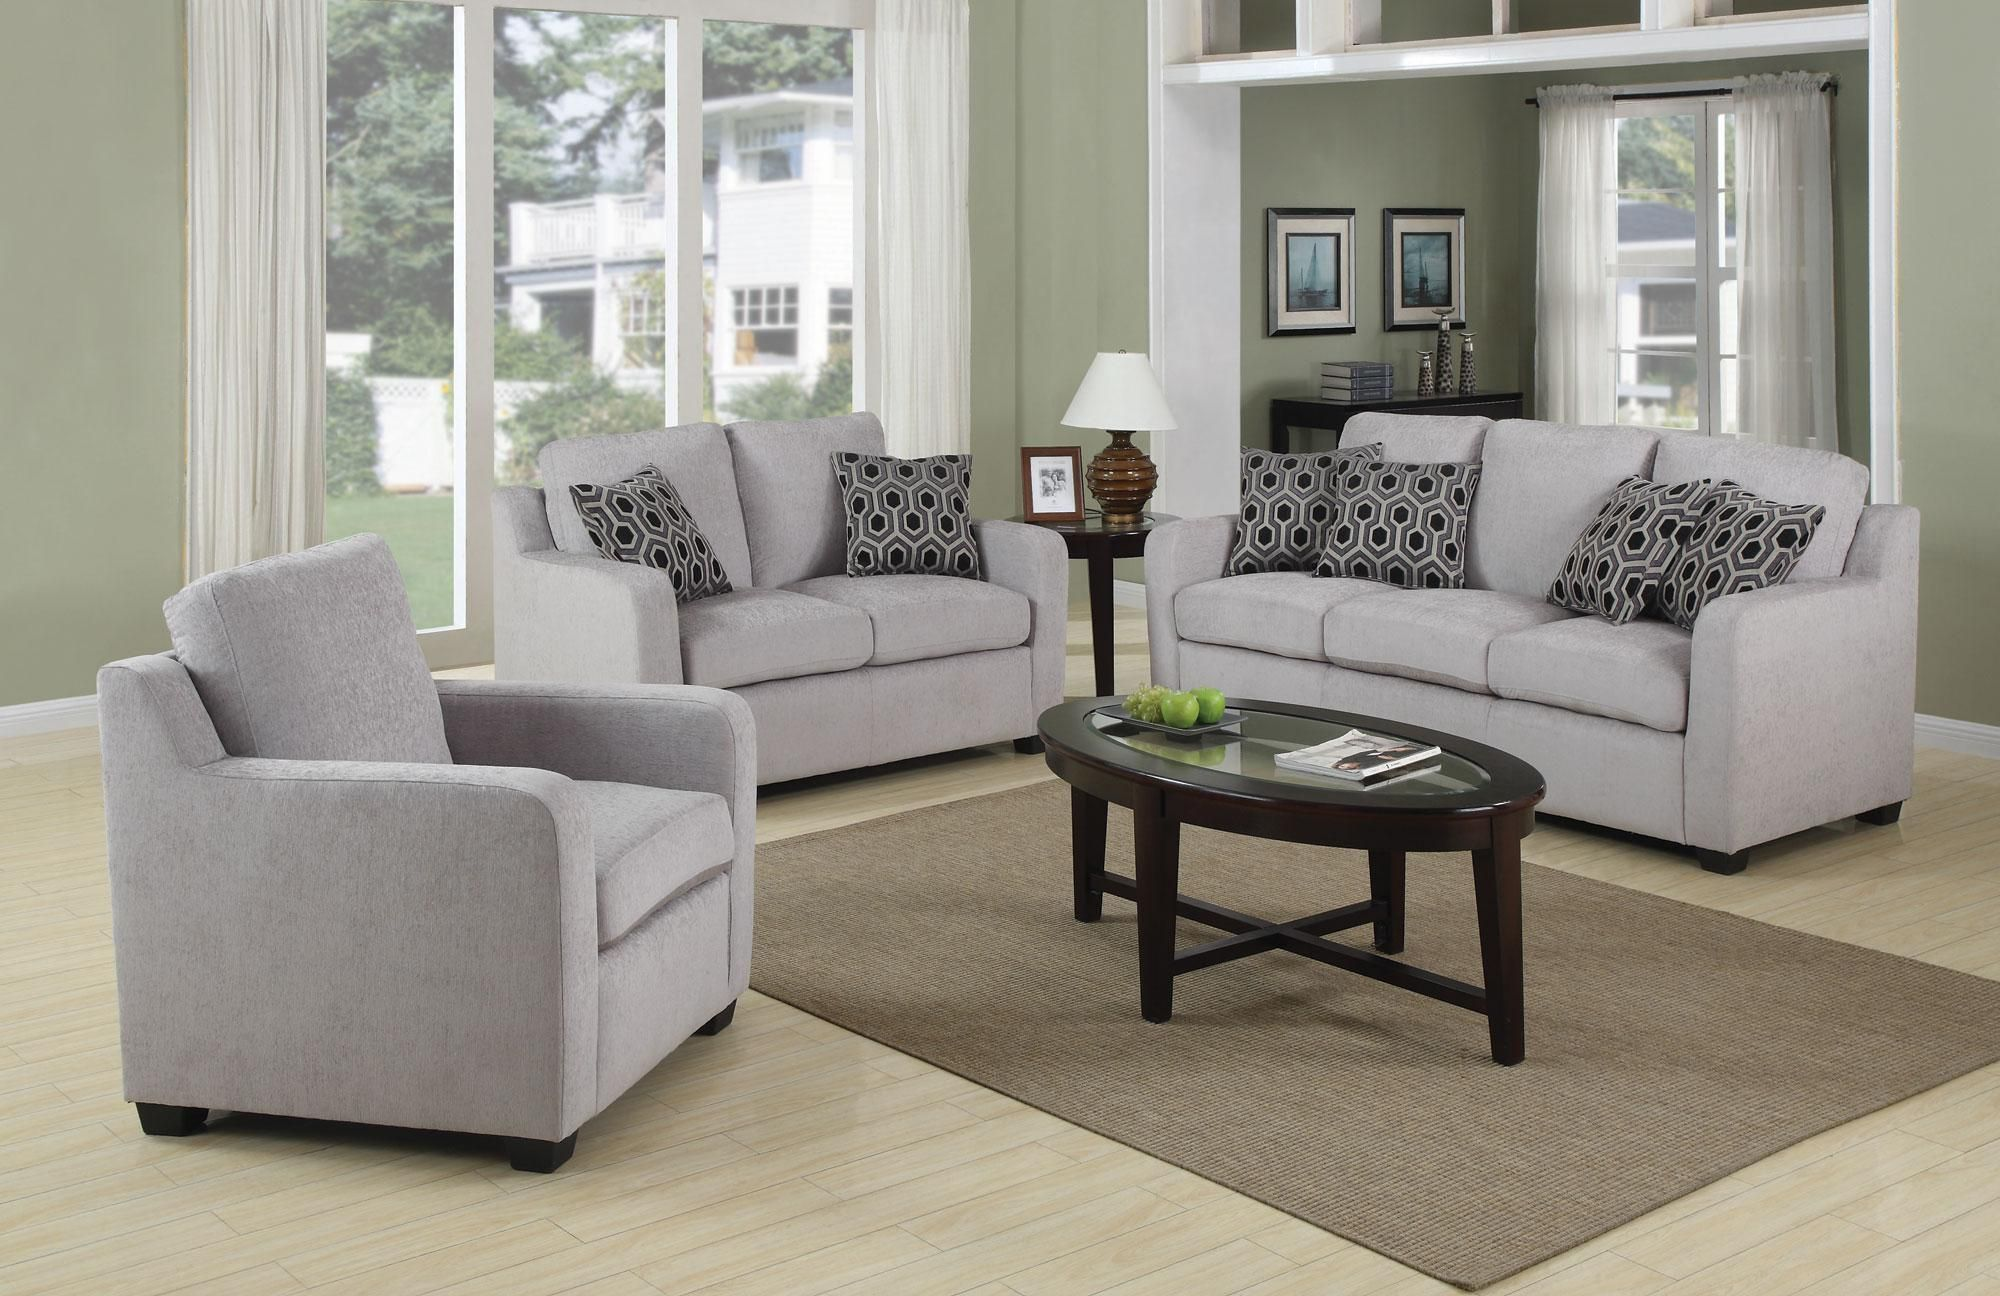 Charlotte Transitional Chenille Grey Sofa With Modern Accent Pillows Coaster And Chair Or Loveseat Living Room Chairs